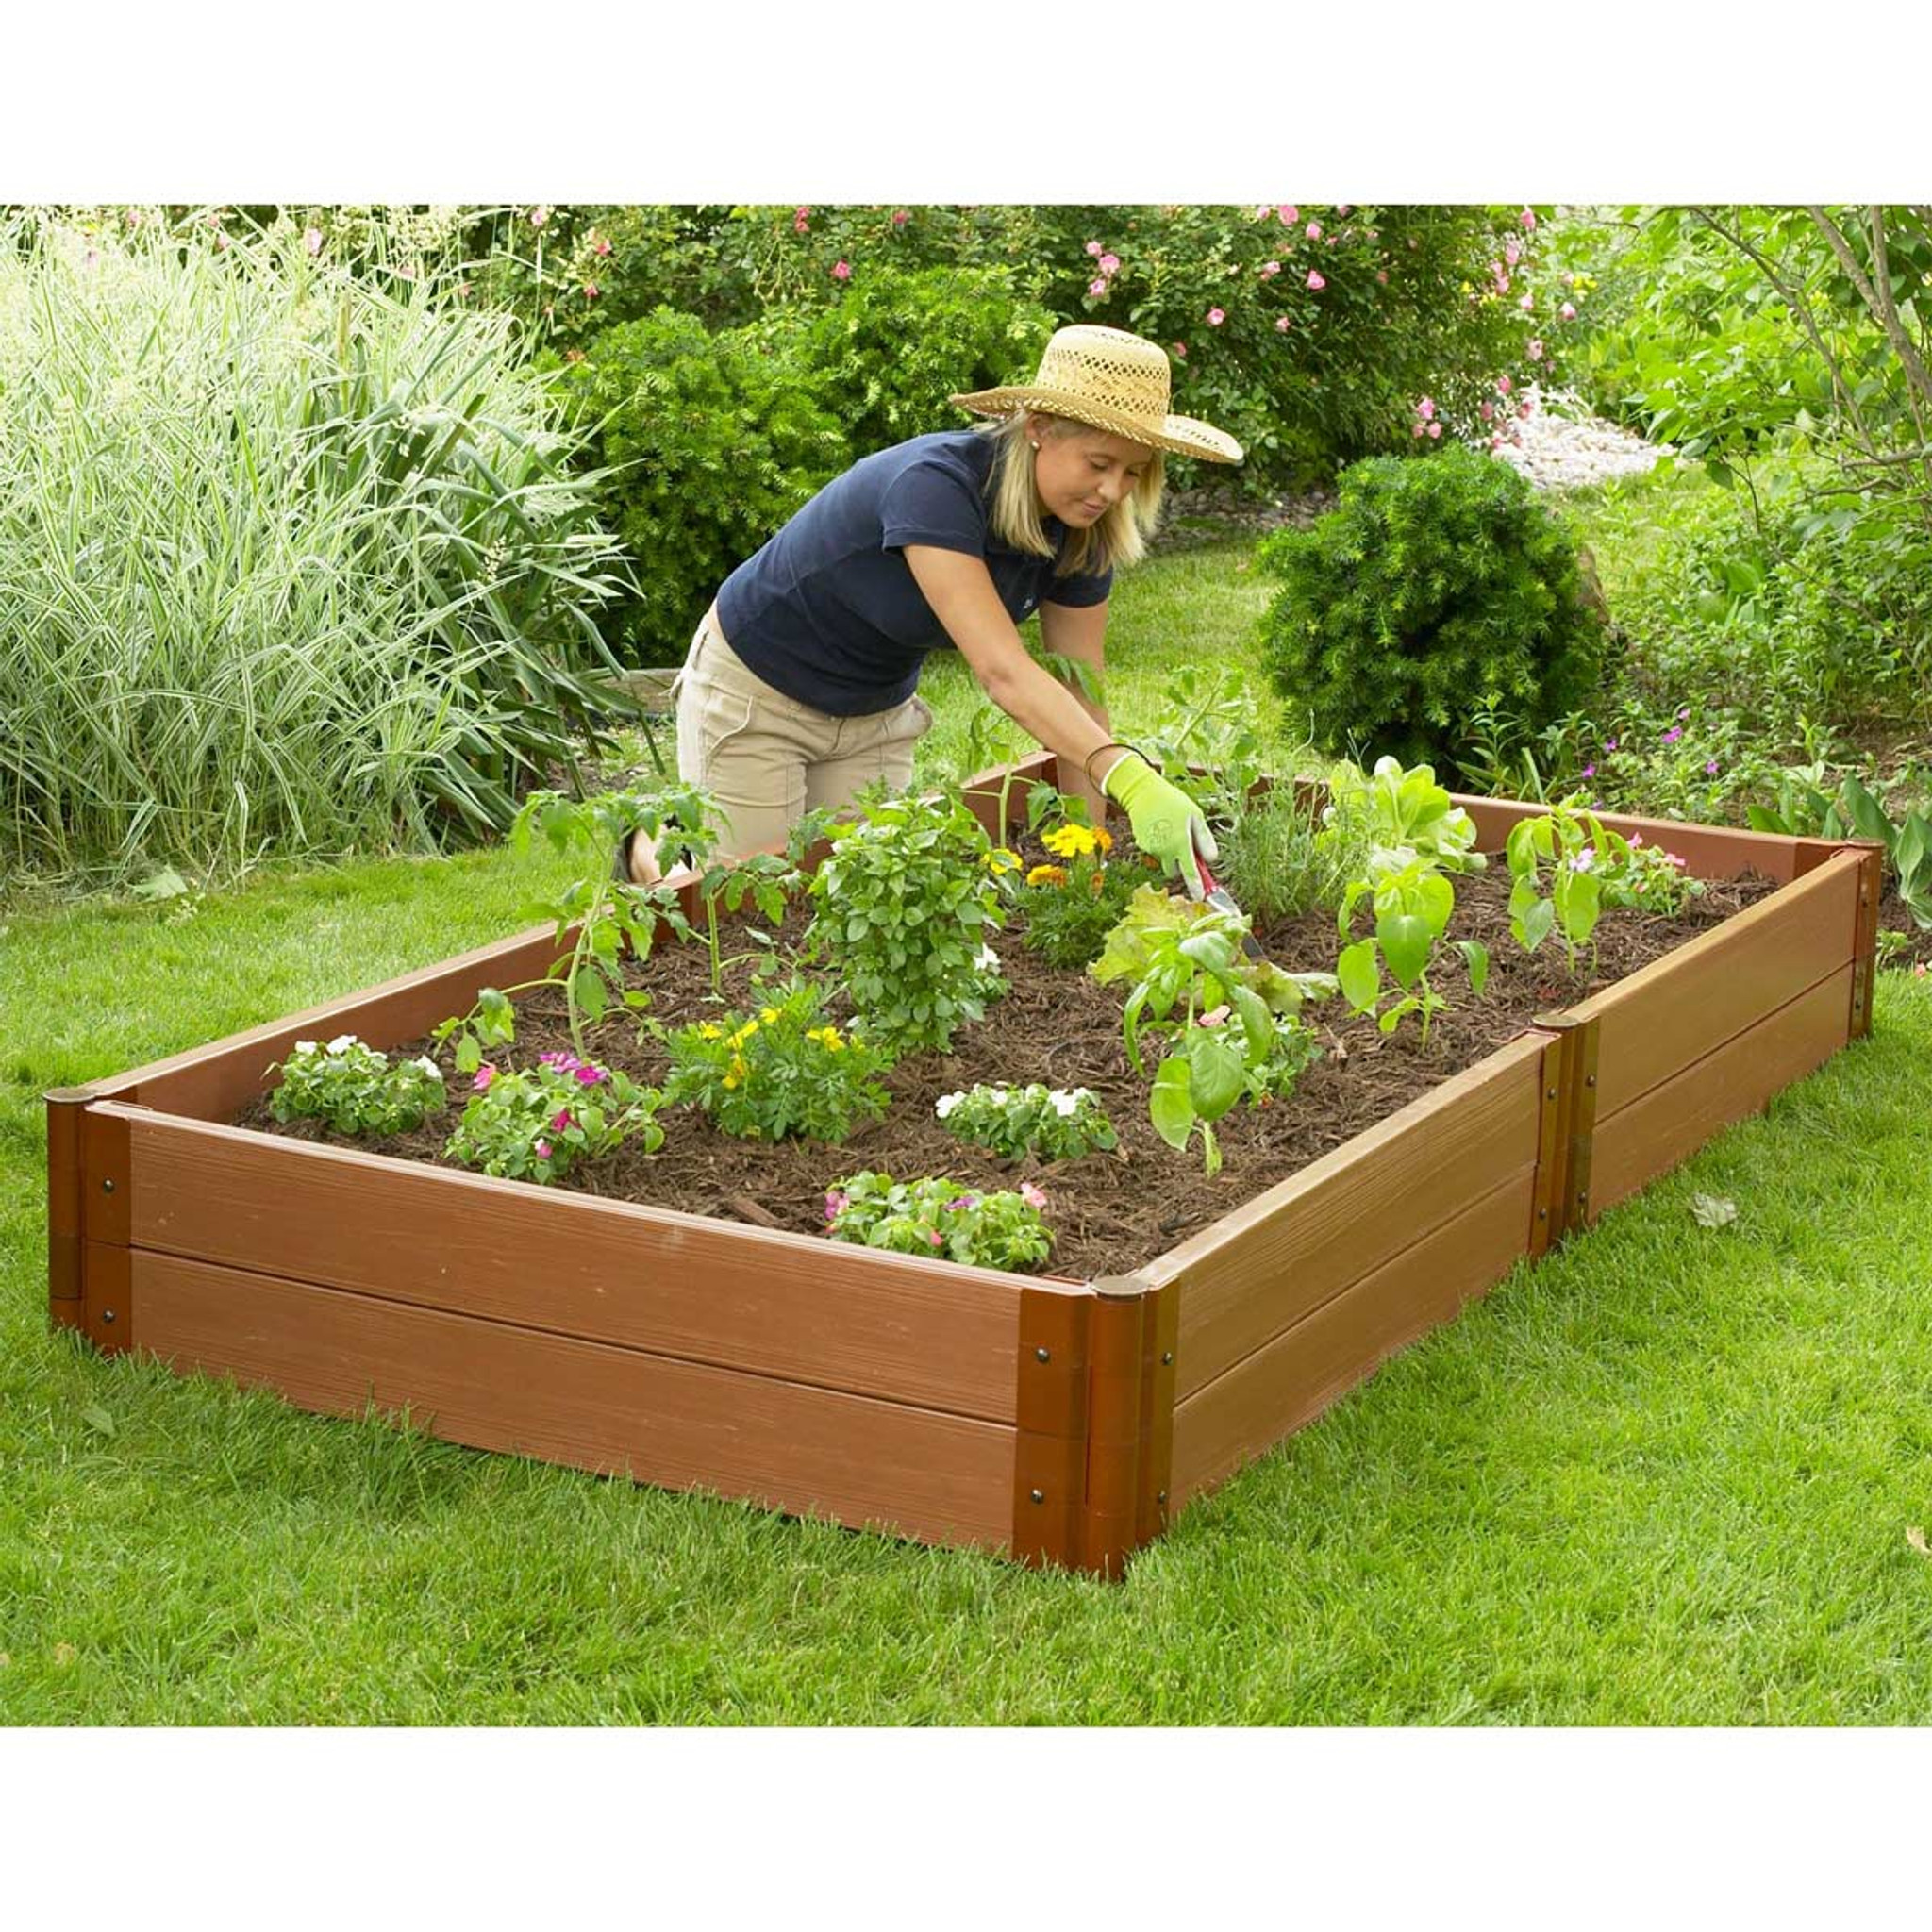 composite raised garden bed 4 x 8 x 11 - Garden Bed